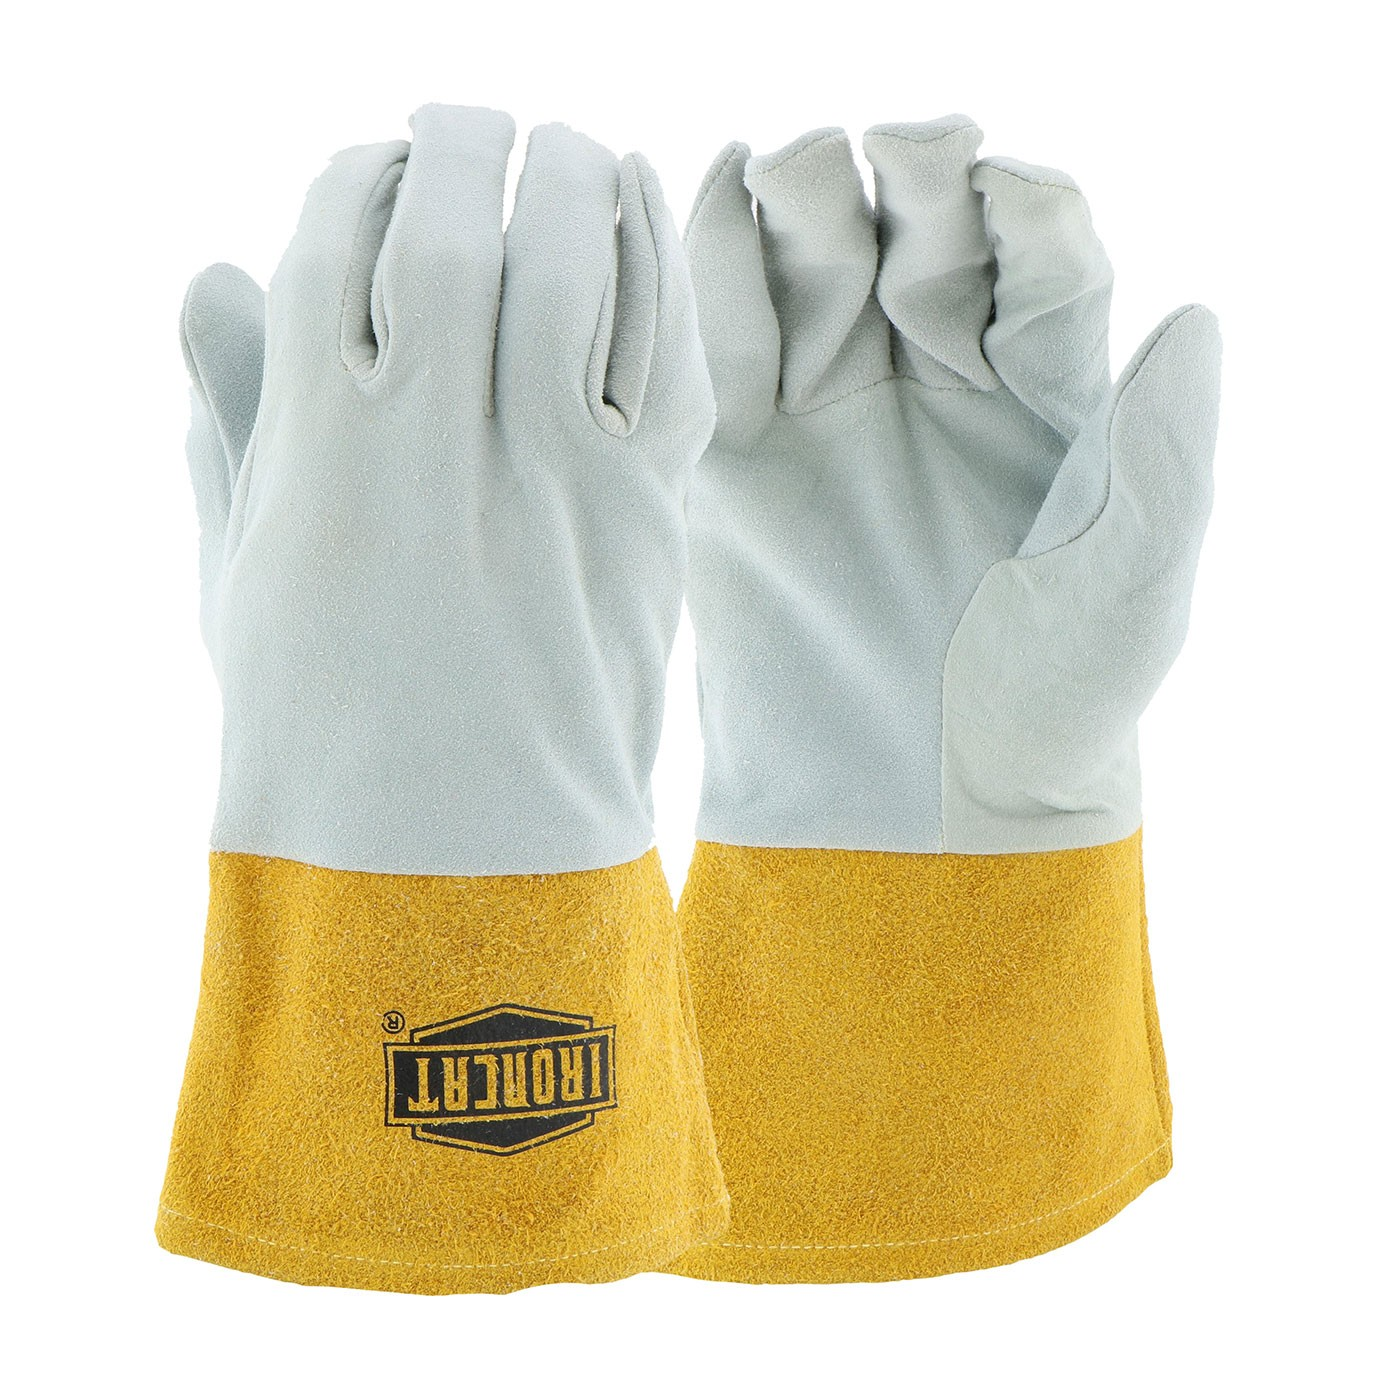 Ironcat® Ironcat® Premium Top Grain Deerskin Leather Tig Glove with Kevlar® Stitching- Split Leather Gauntlet Cuff  (#6130)